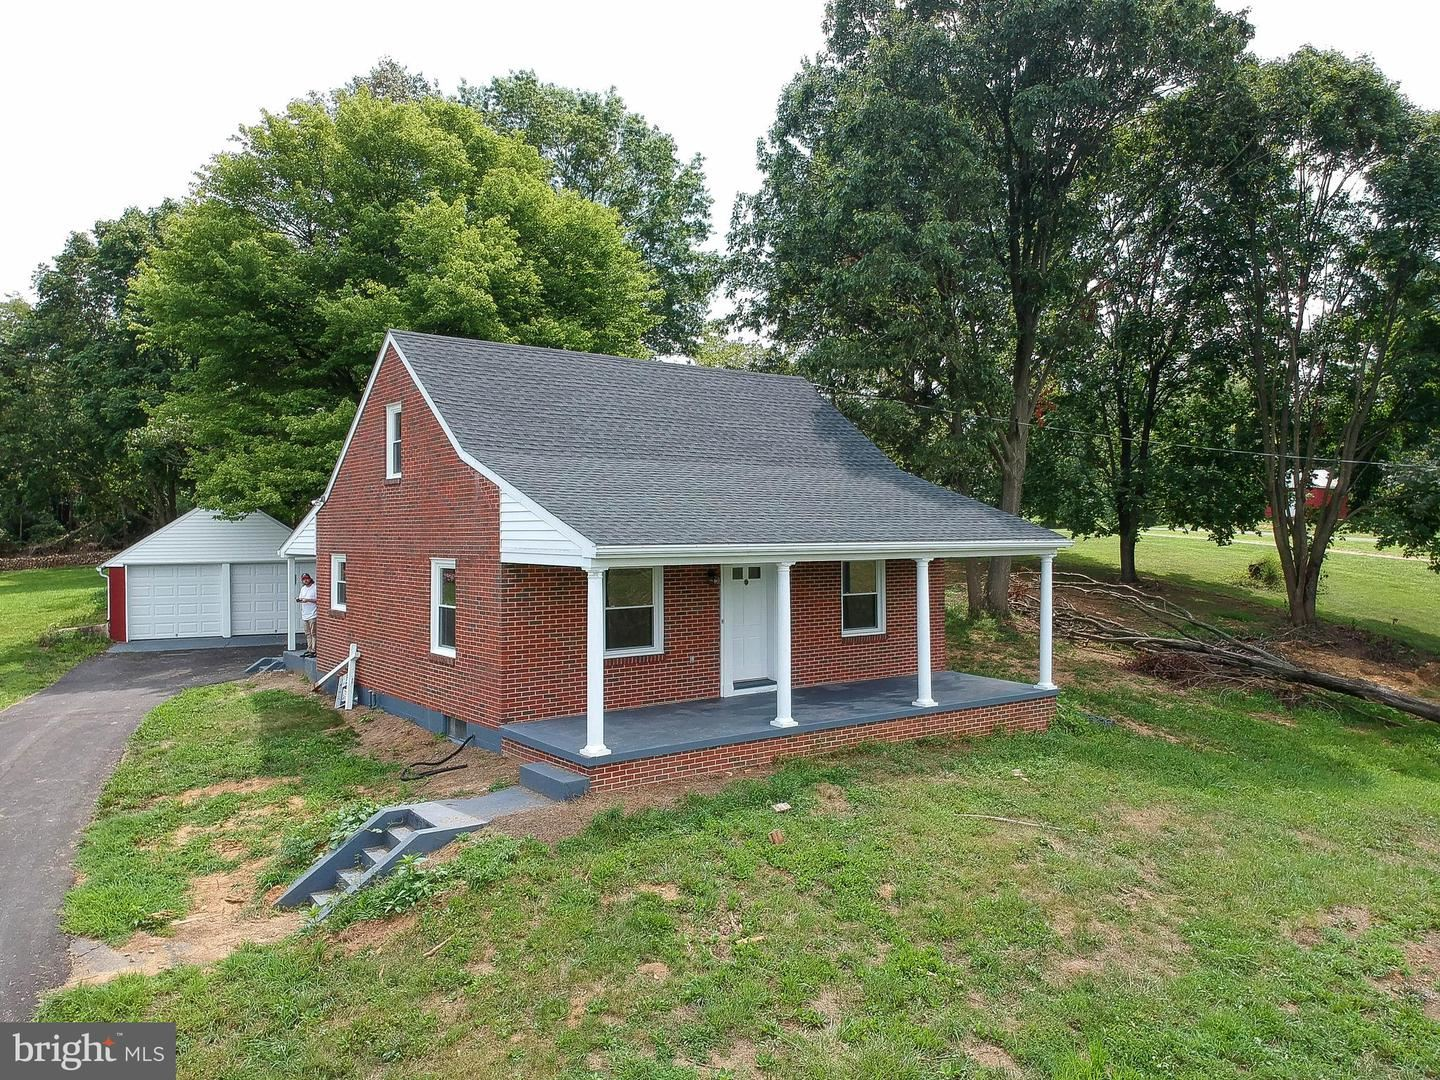 Photo of 21211 SAN MAR RD, BOONSBORO, MD 21713 (MLS # MDWA173940)